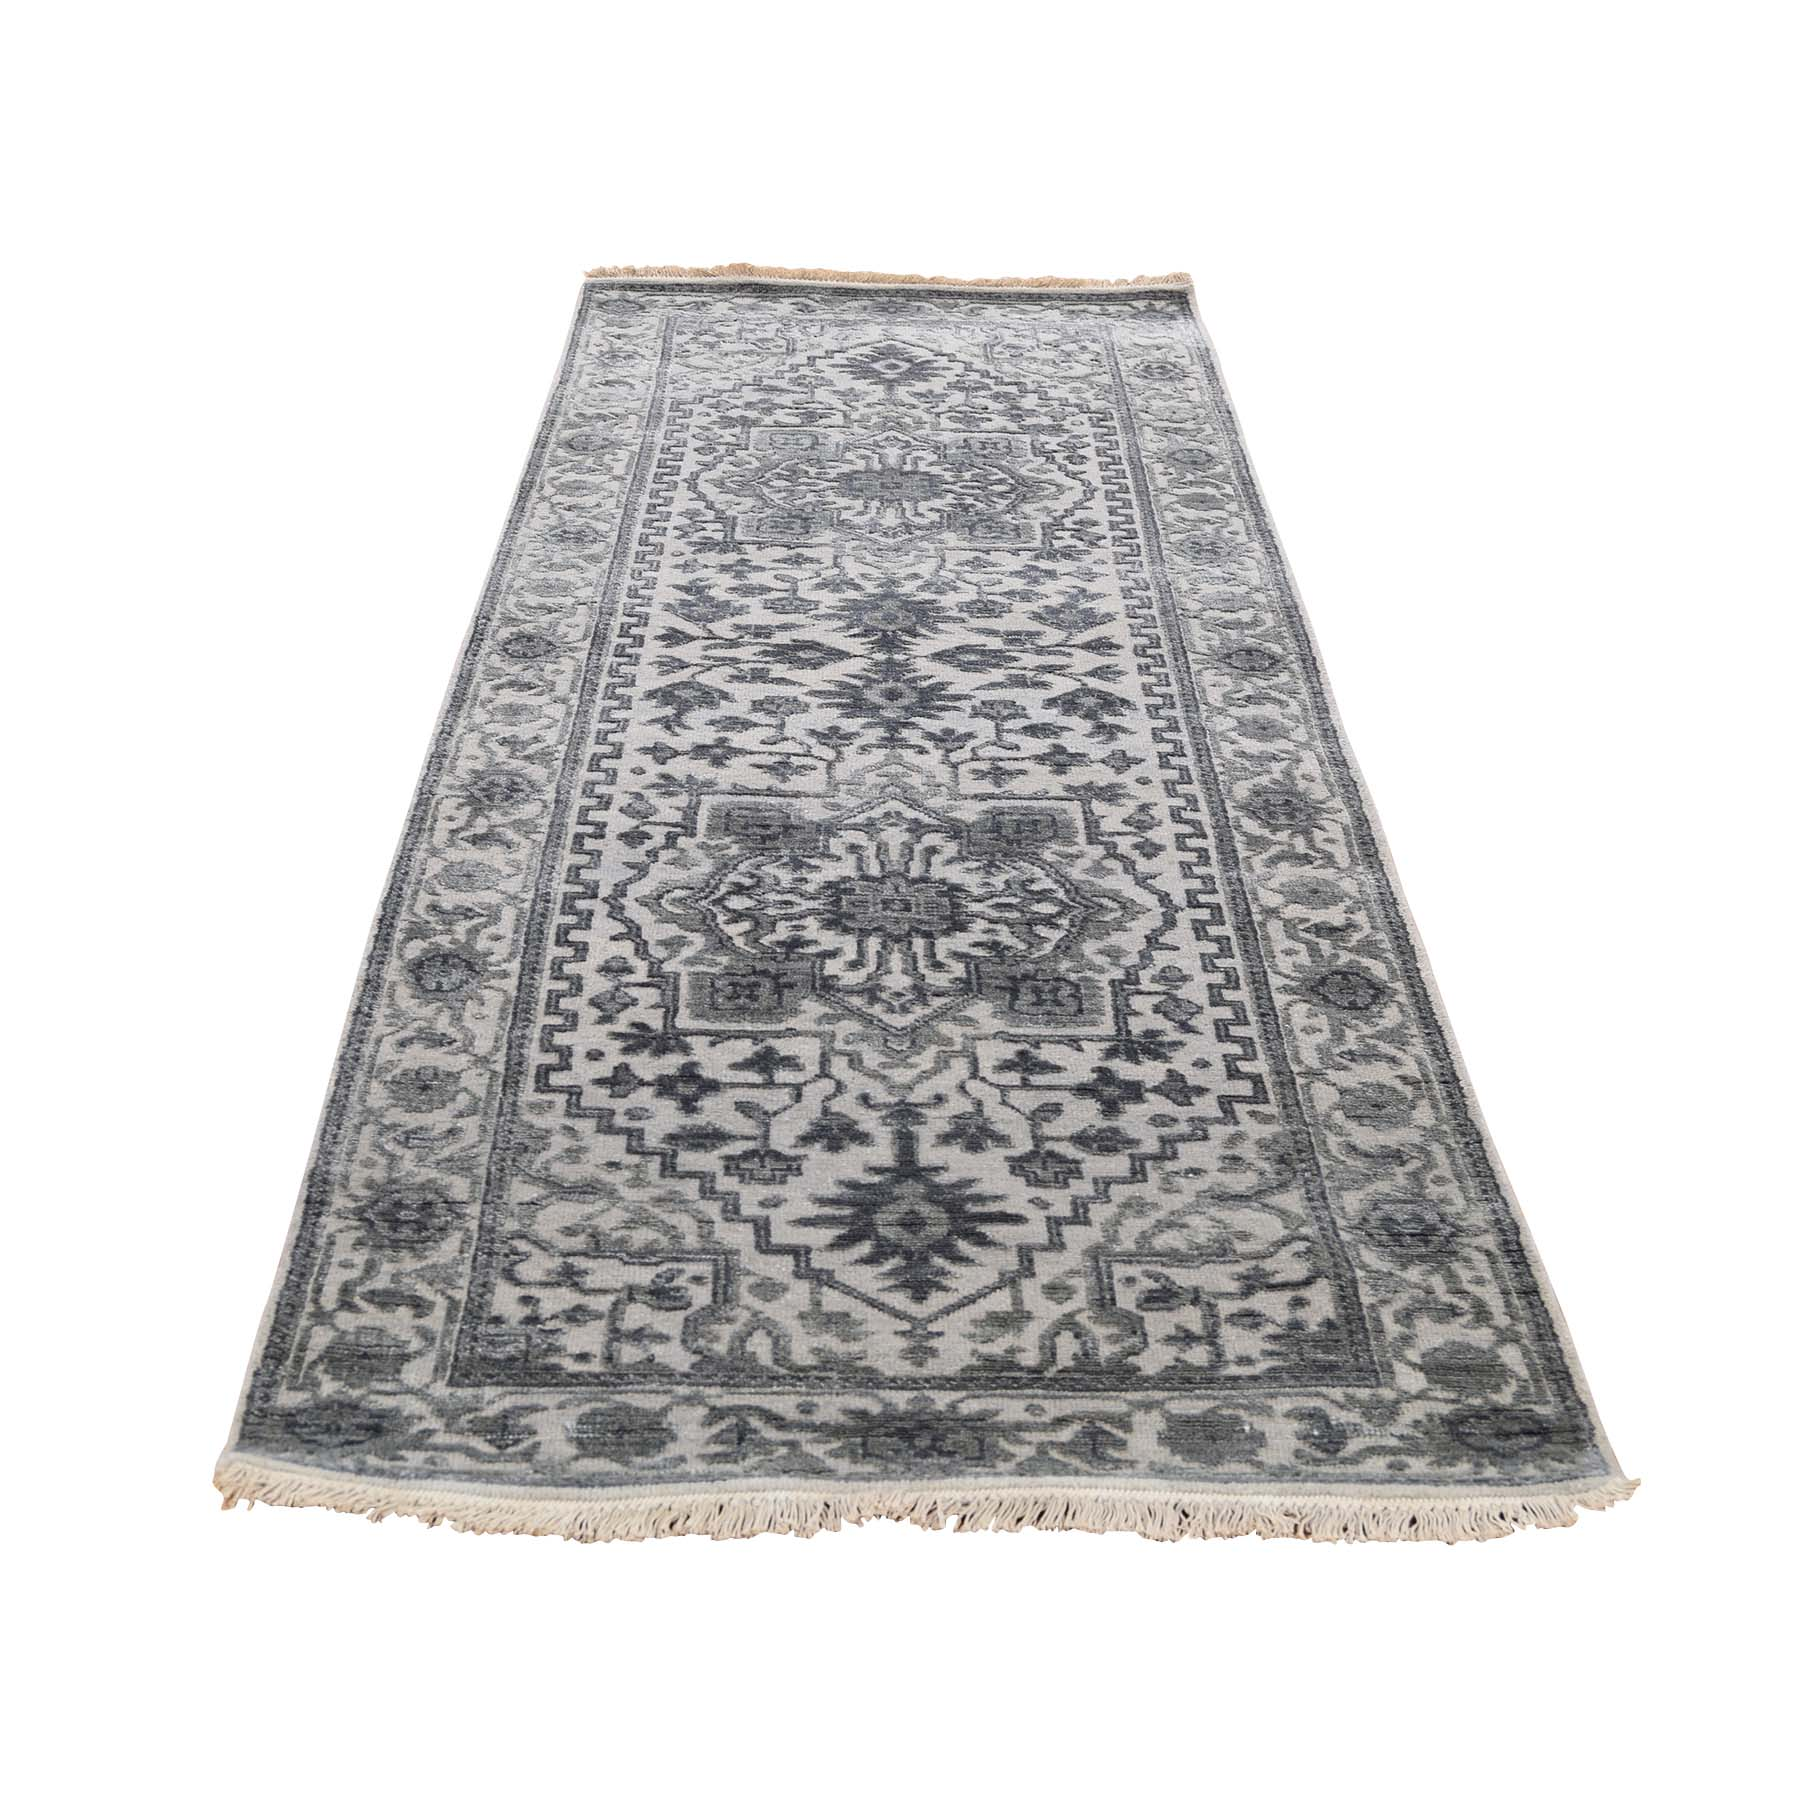 "2'6""X8'2"" Silver Heriz Design Wool And Silk Hi-Lo Pile Runner Hand-Knotted Oriental Rug moadd90c"